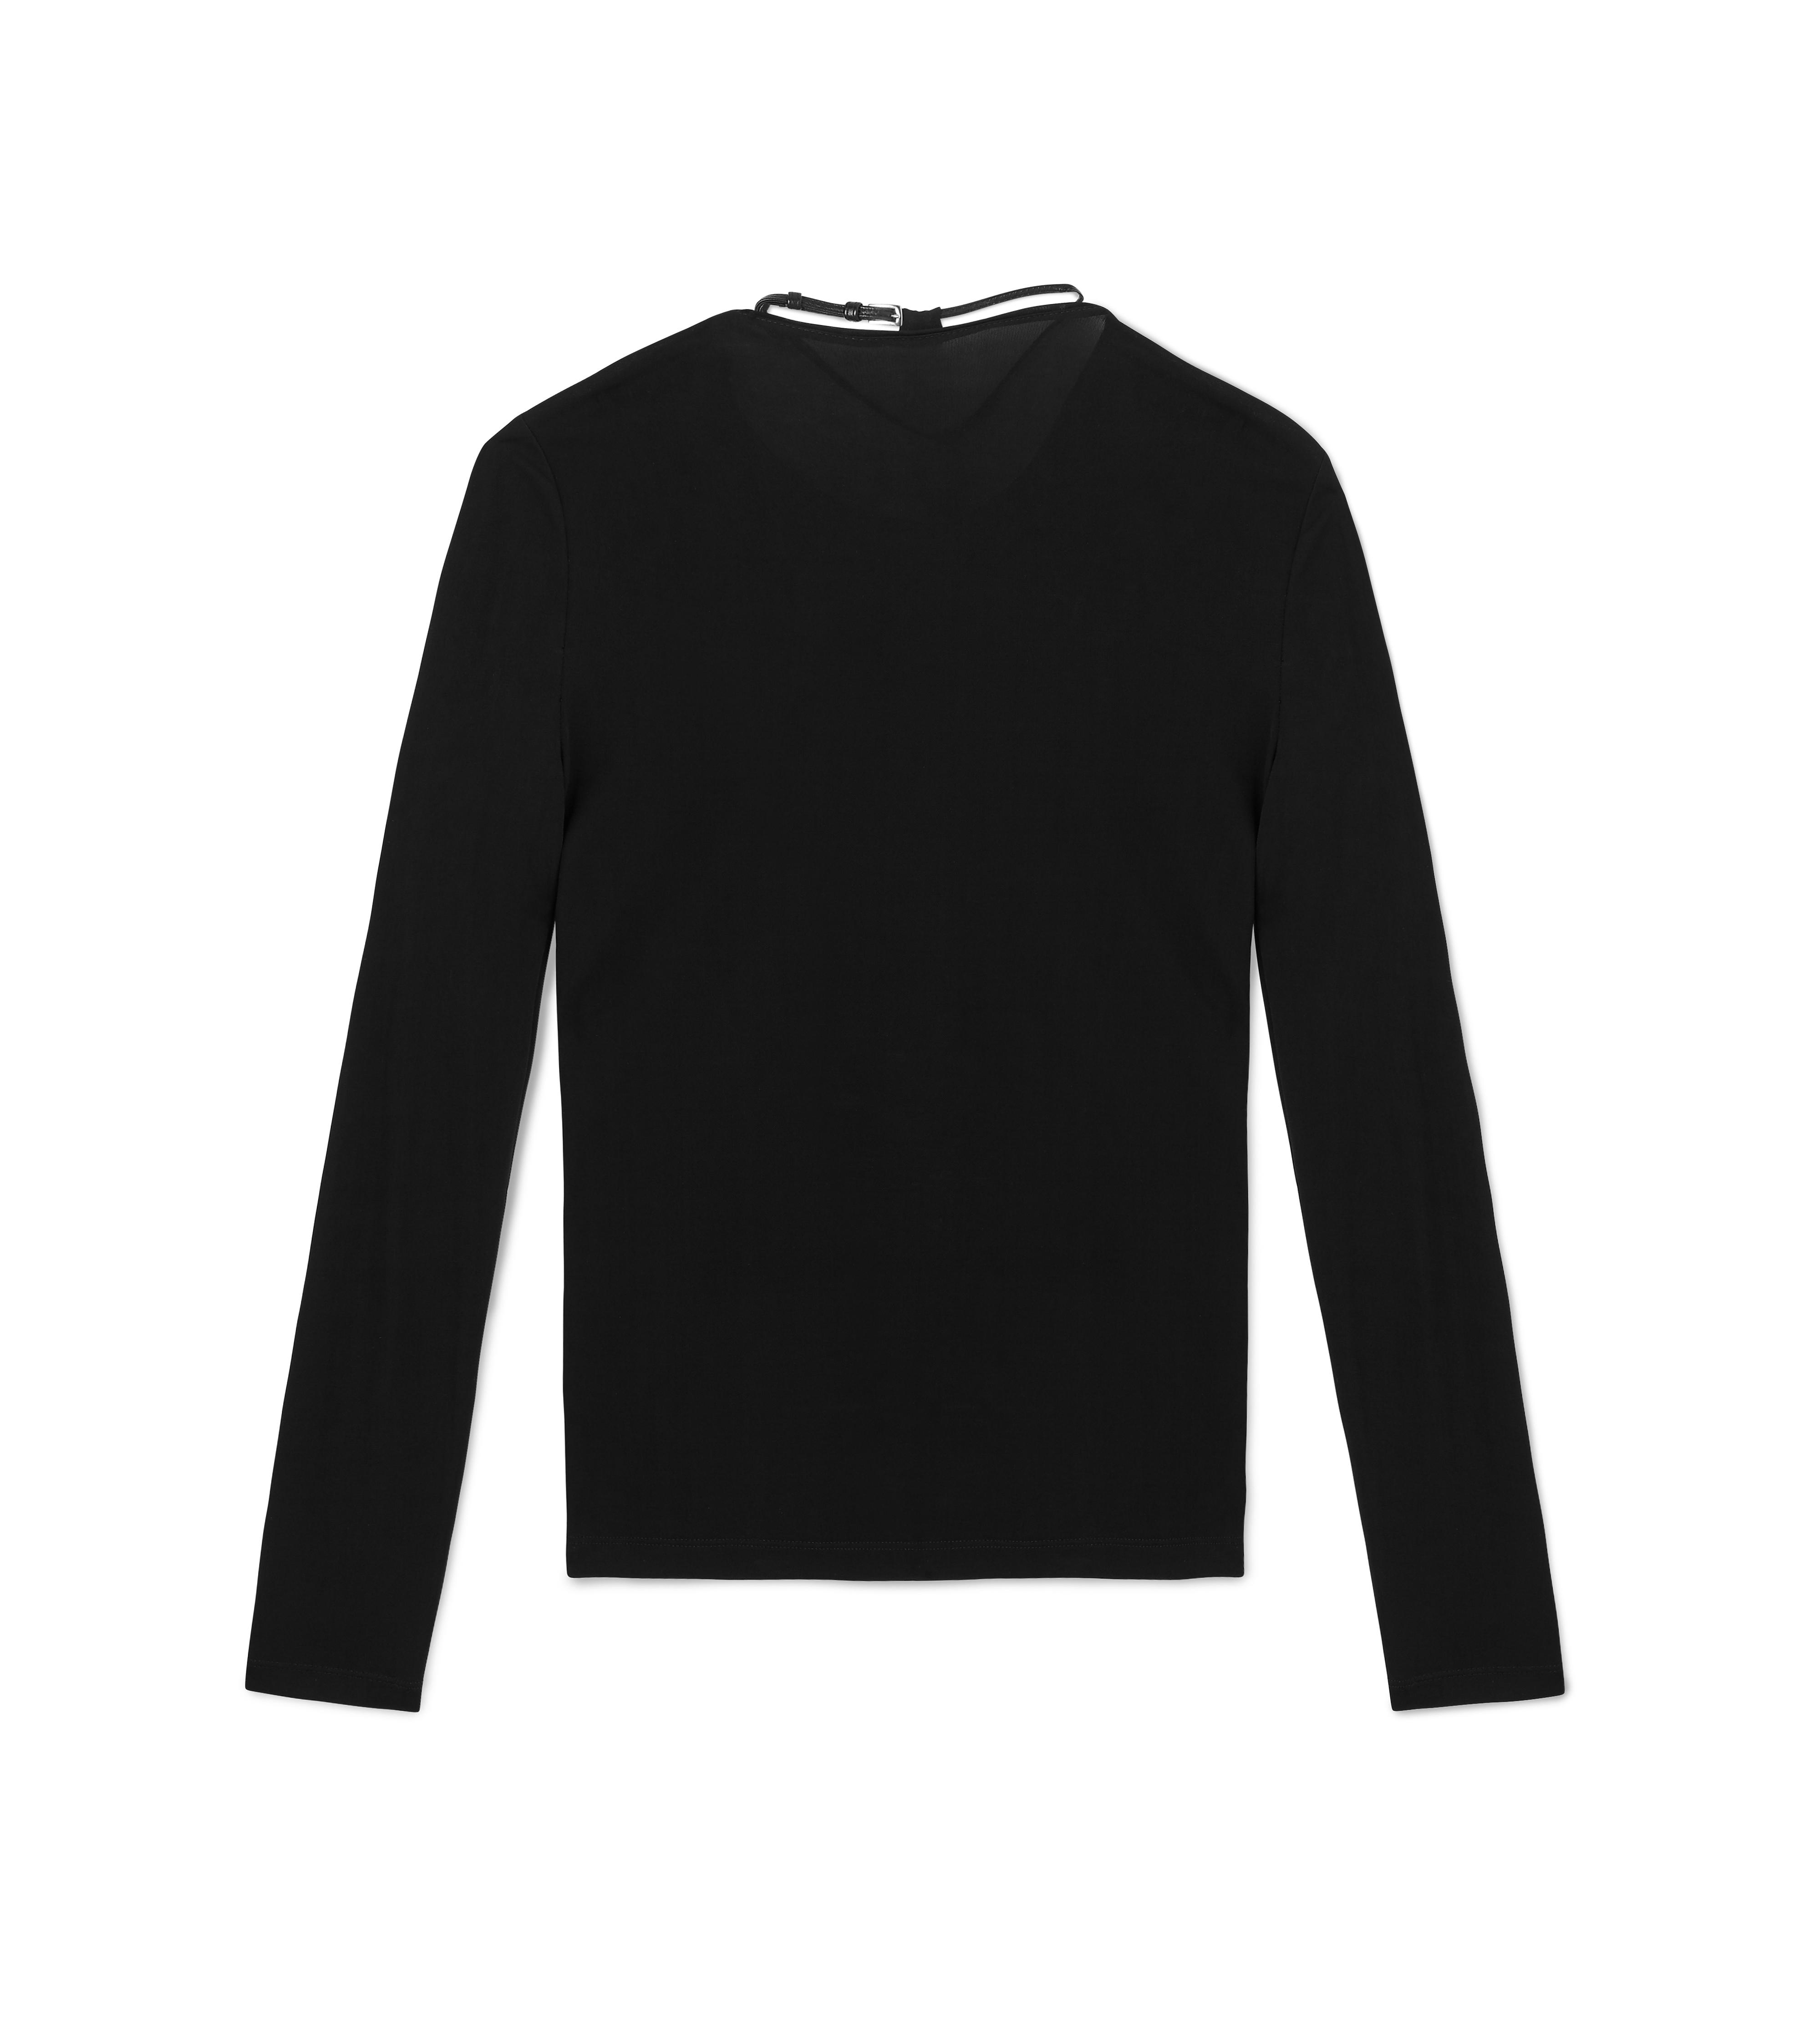 LONG SLEEVE CREW NECK TOP WITH PADLOCK ON LEATHER NECKLACE D thumbnail